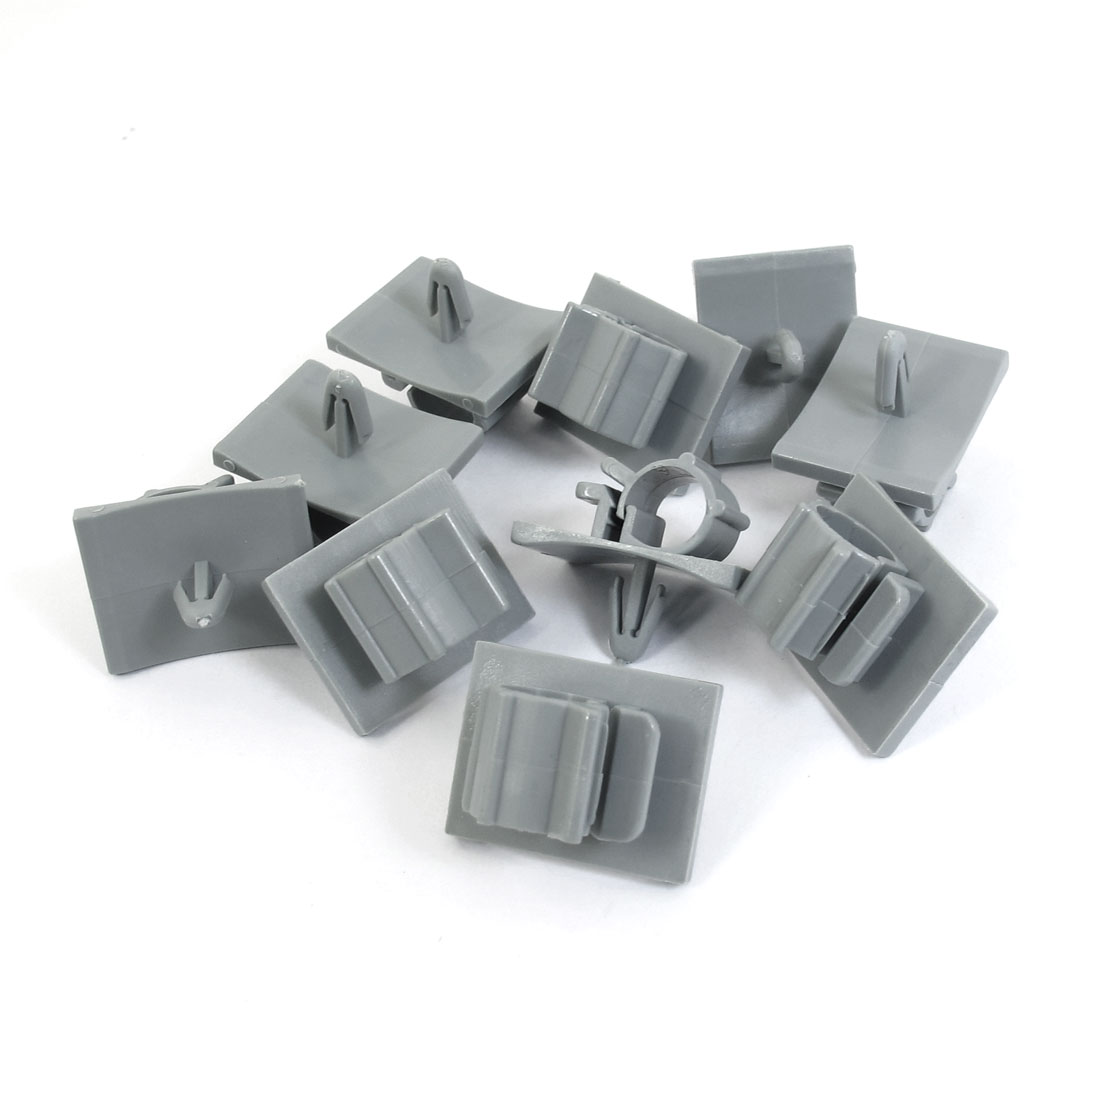 CPS-0708 Gray Cord Managemen Standoff Cable Holder Clamp Clips Organizer 10 Pcs